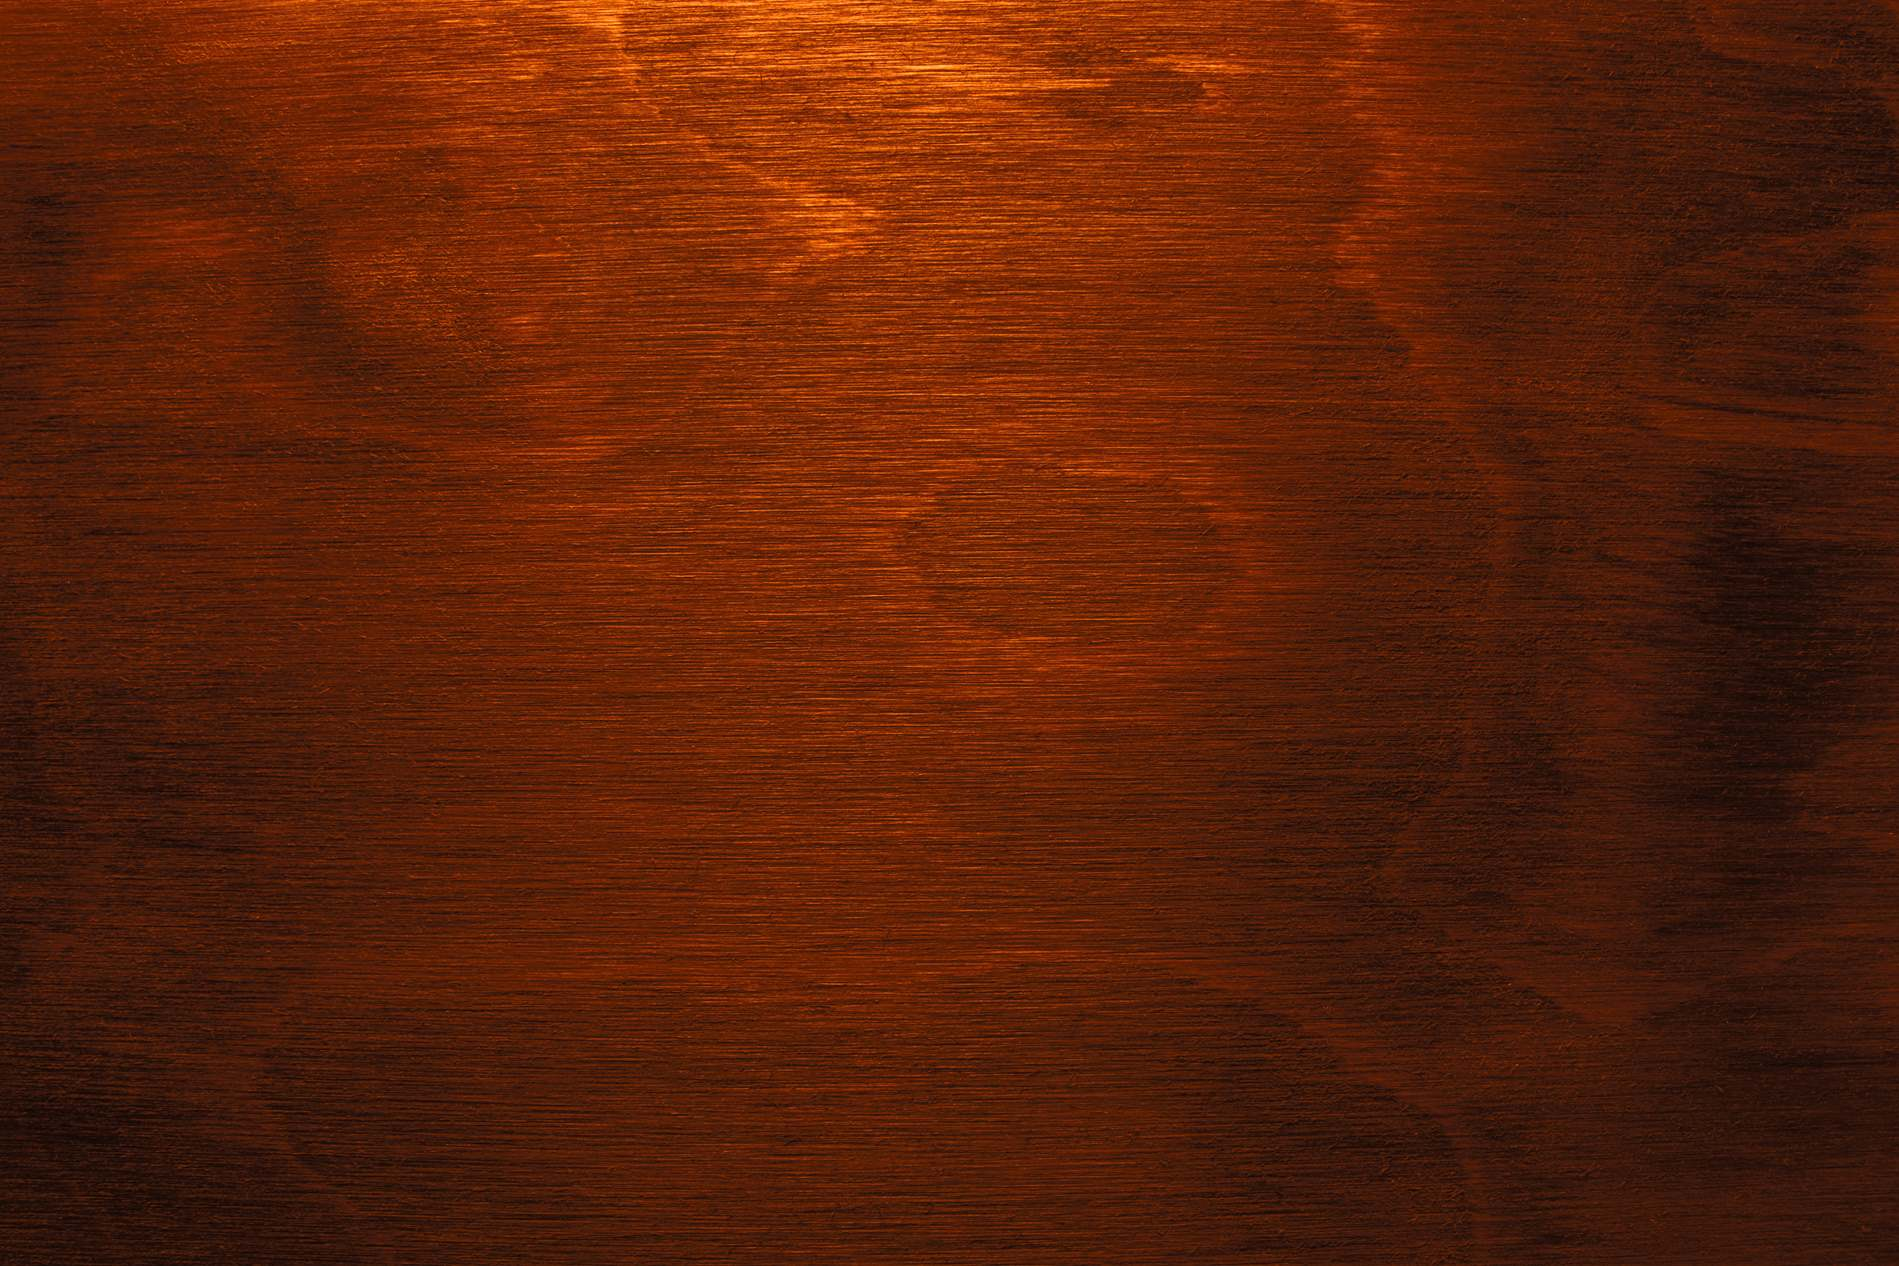 Dark red wood texture background photohdx